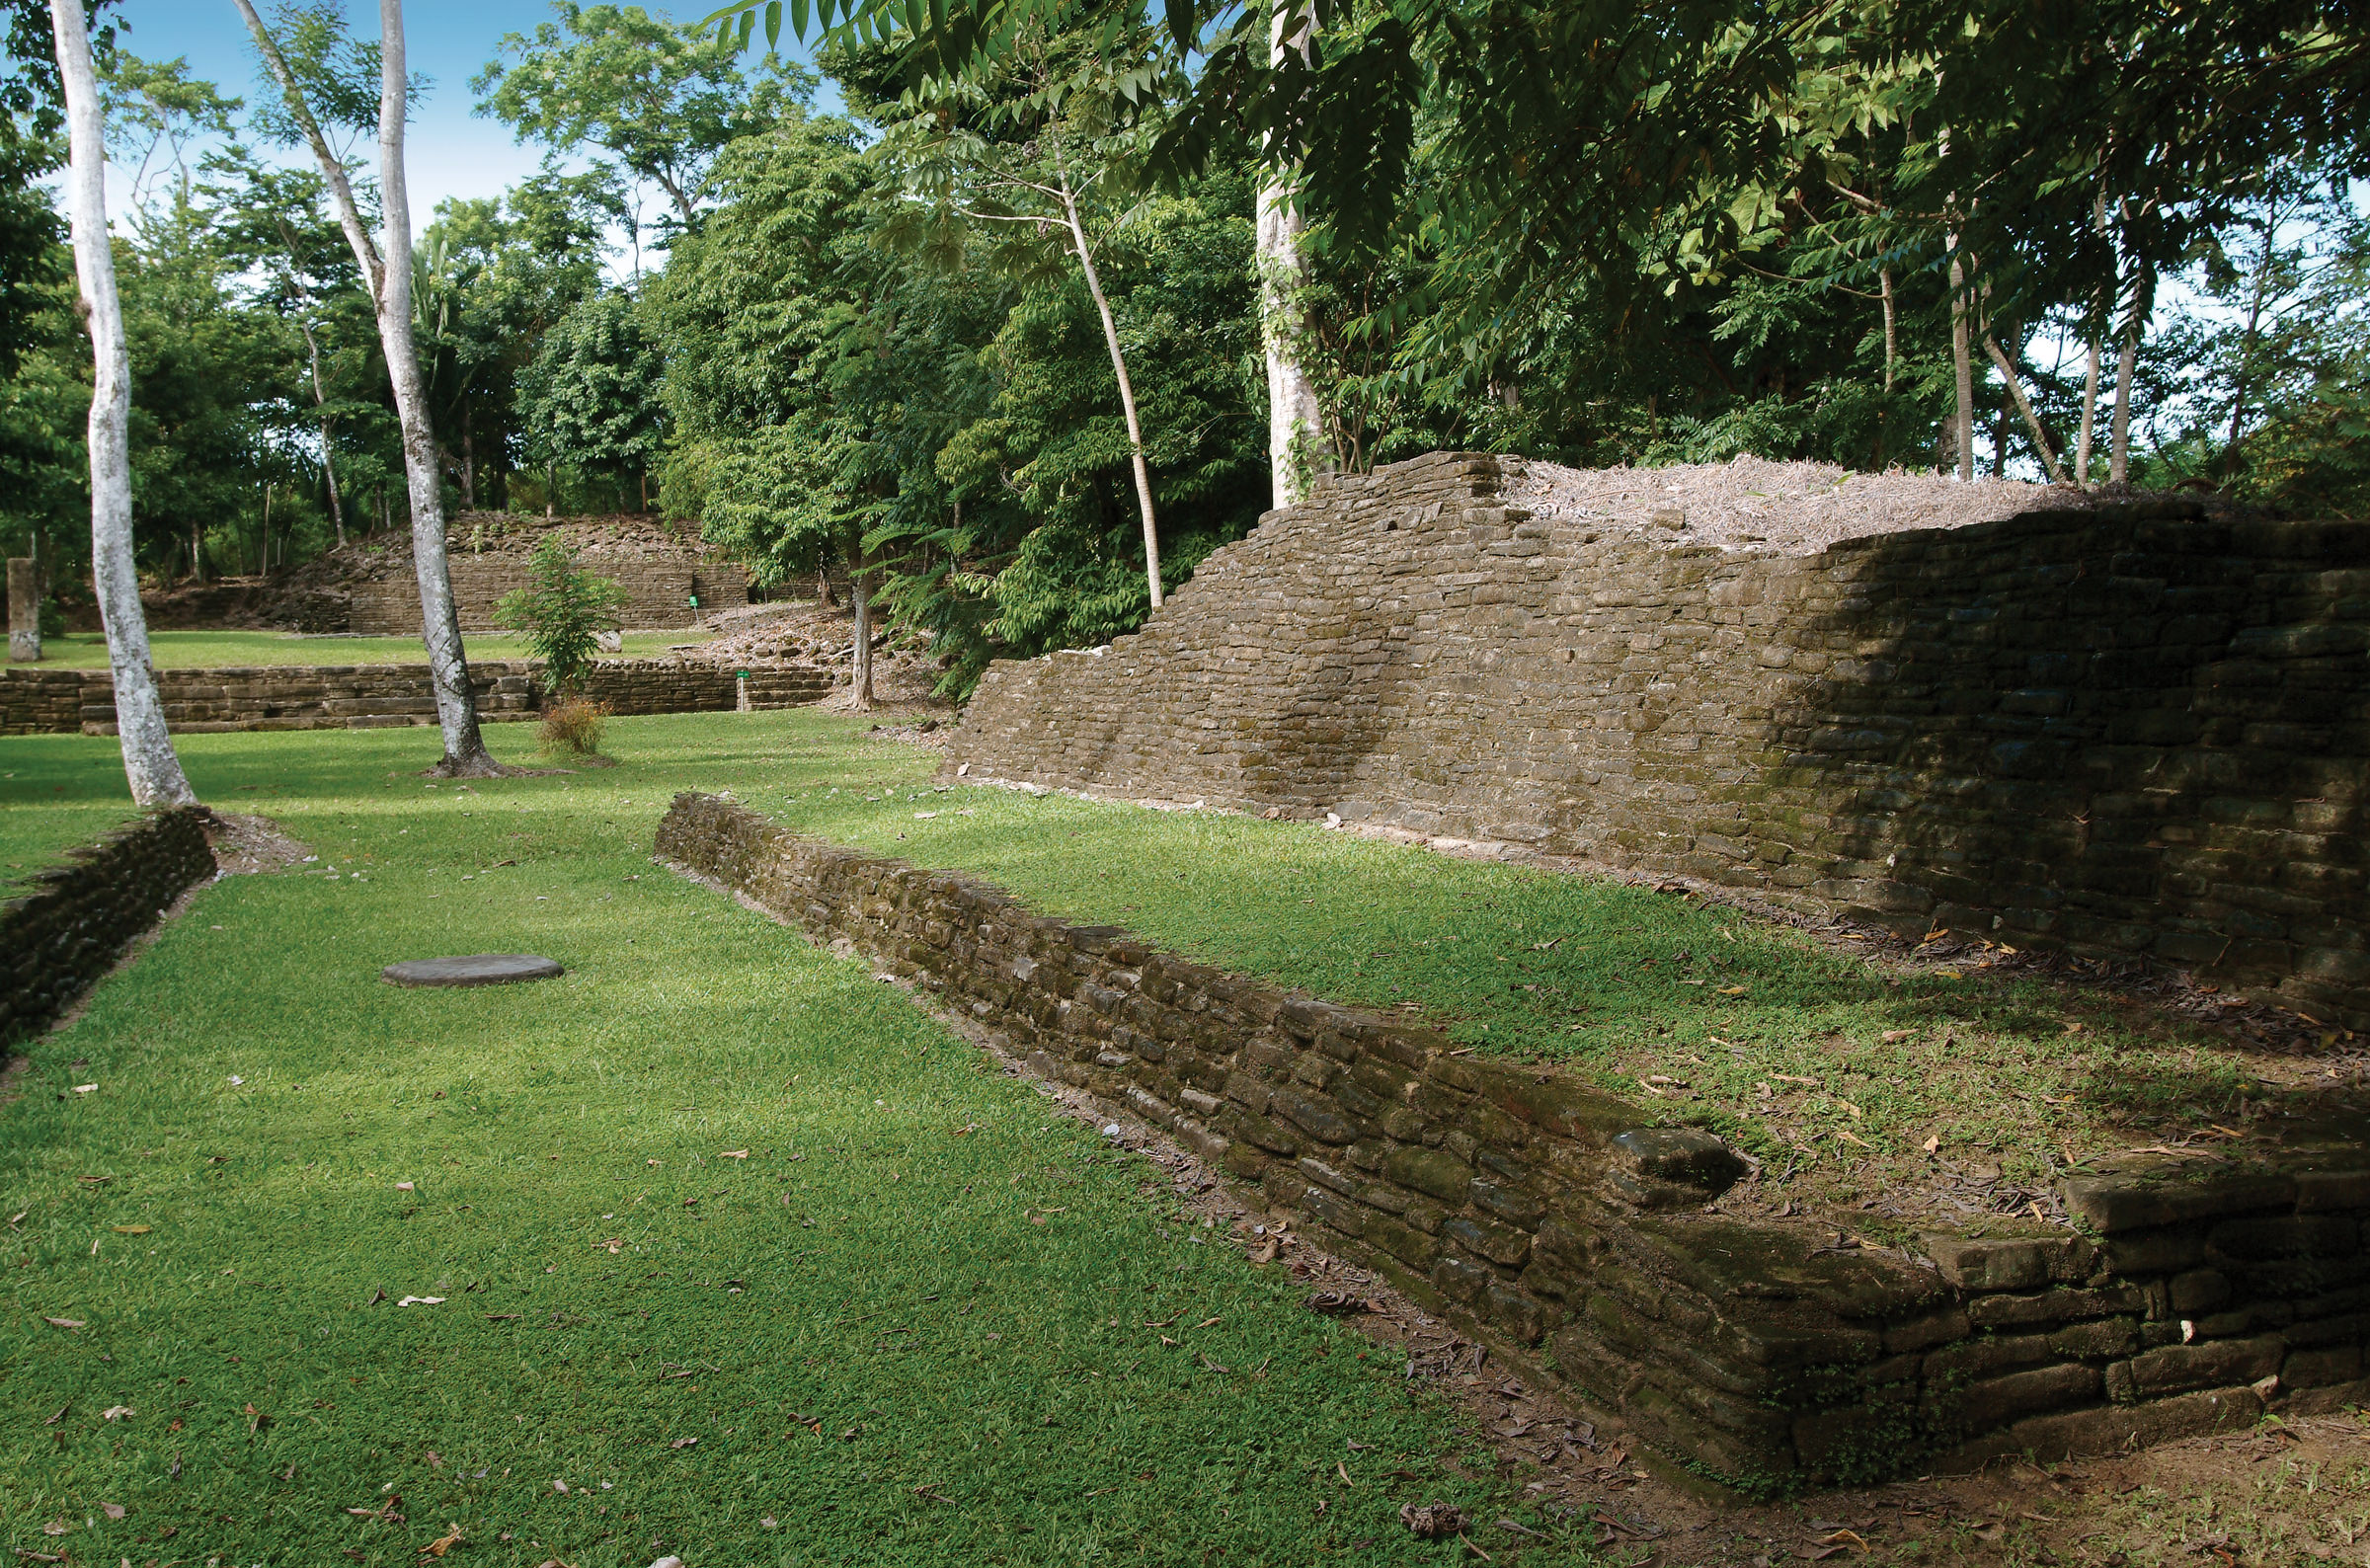 Maya Ruins in Southern Belize